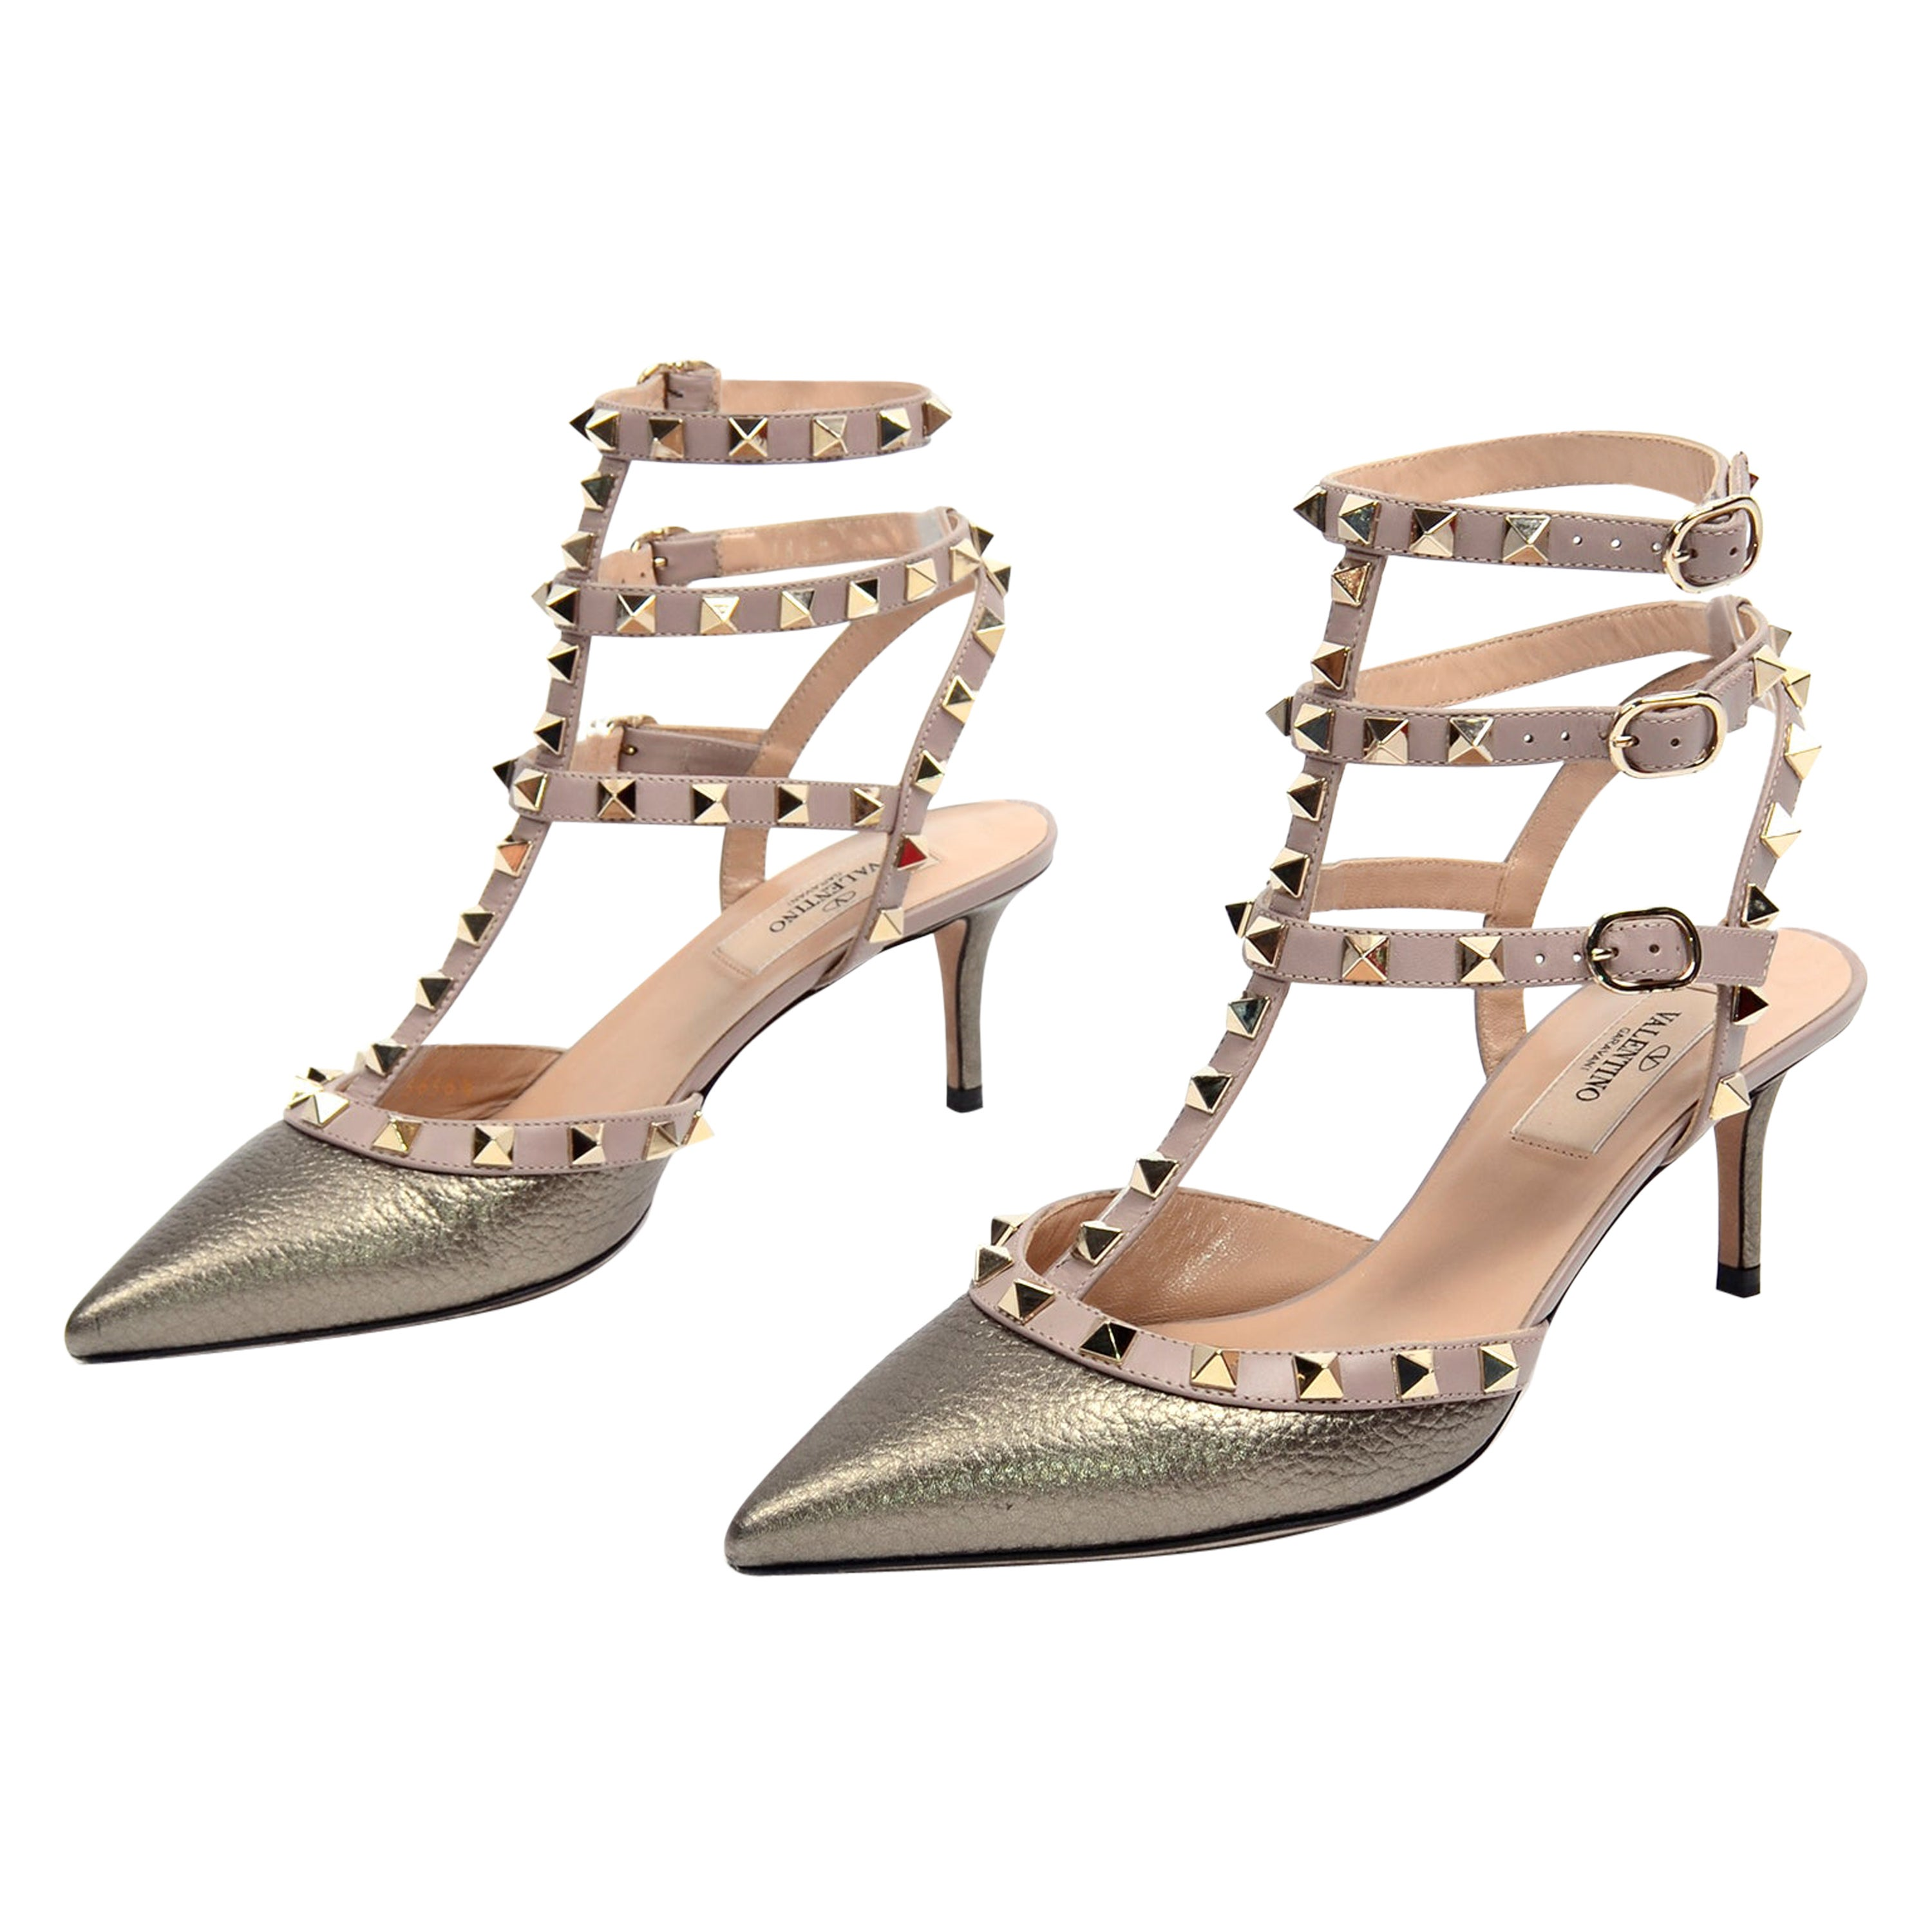 Valentino Rockstud Metallic Gold Cage Ankle Strap Low Heel Shoes